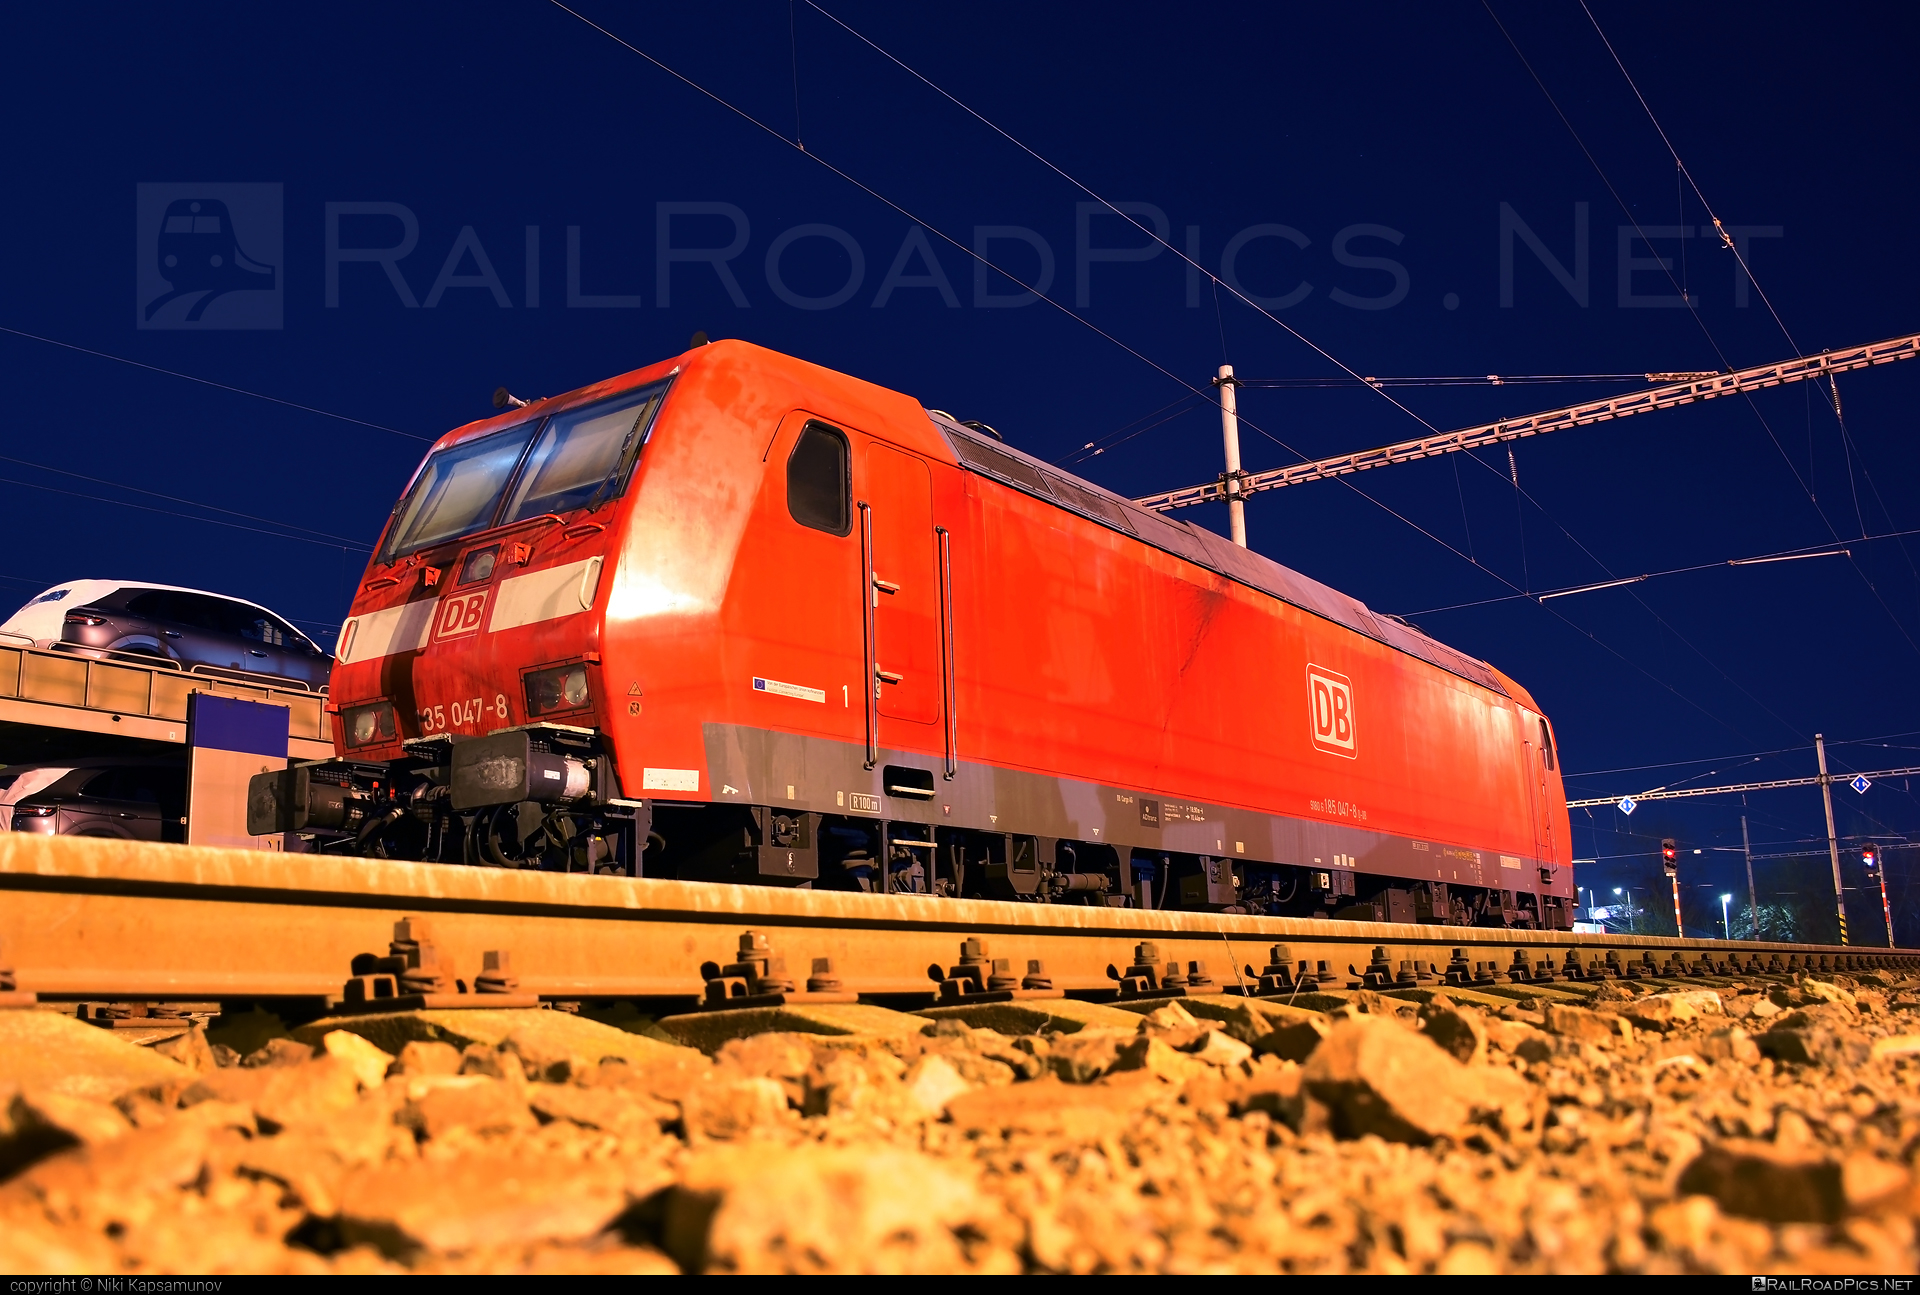 Bombardier TRAXX F140 AC1 - 185 047-8 operated by DB Cargo AG #bombardier #bombardiertraxx #db #dbcargo #dbcargoag #deutschebahn #traxx #traxxf140 #traxxf140ac #traxxf140ac1